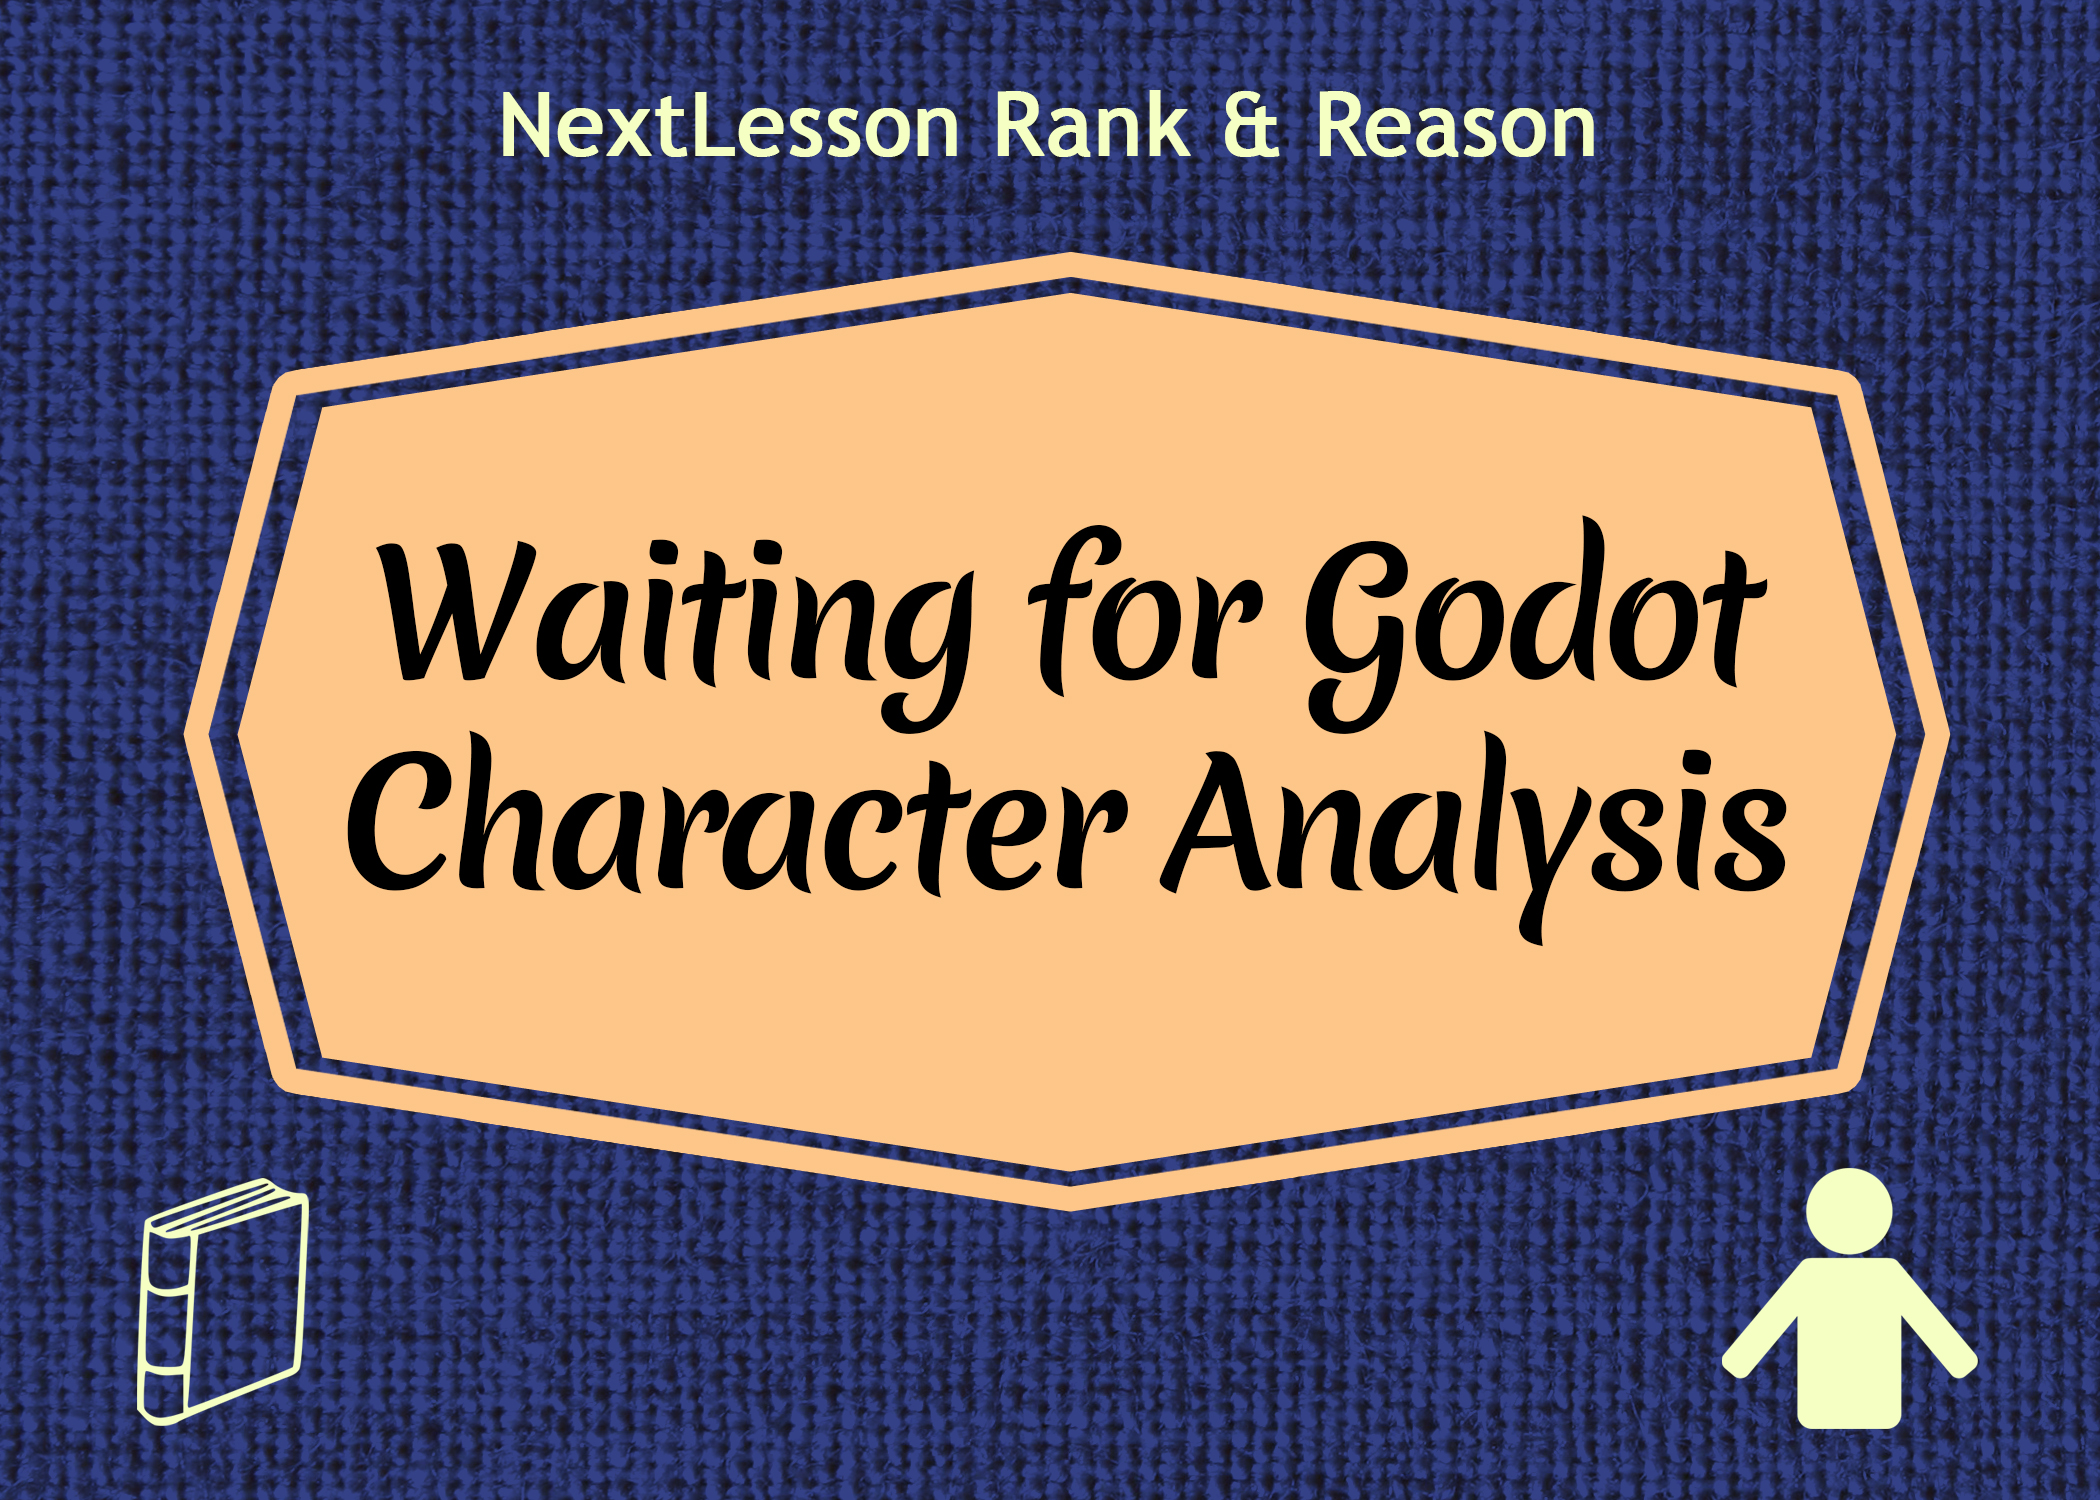 waiting for godot analytical essay get a custom high quality waiting for godot analytical essay get a custom high quality essay here